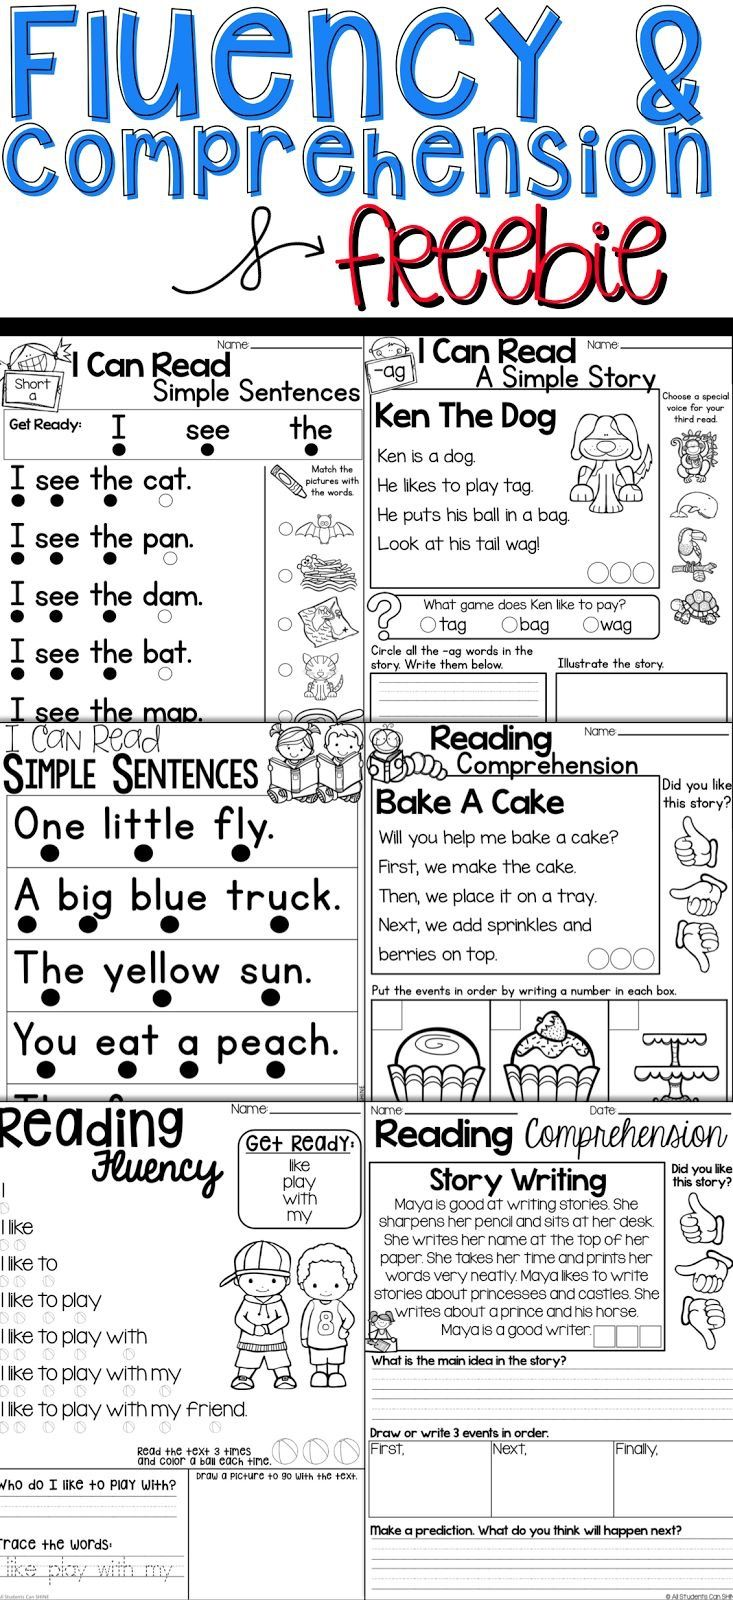 11 best Sight words images on Pinterest | School, 1st grades and Reading